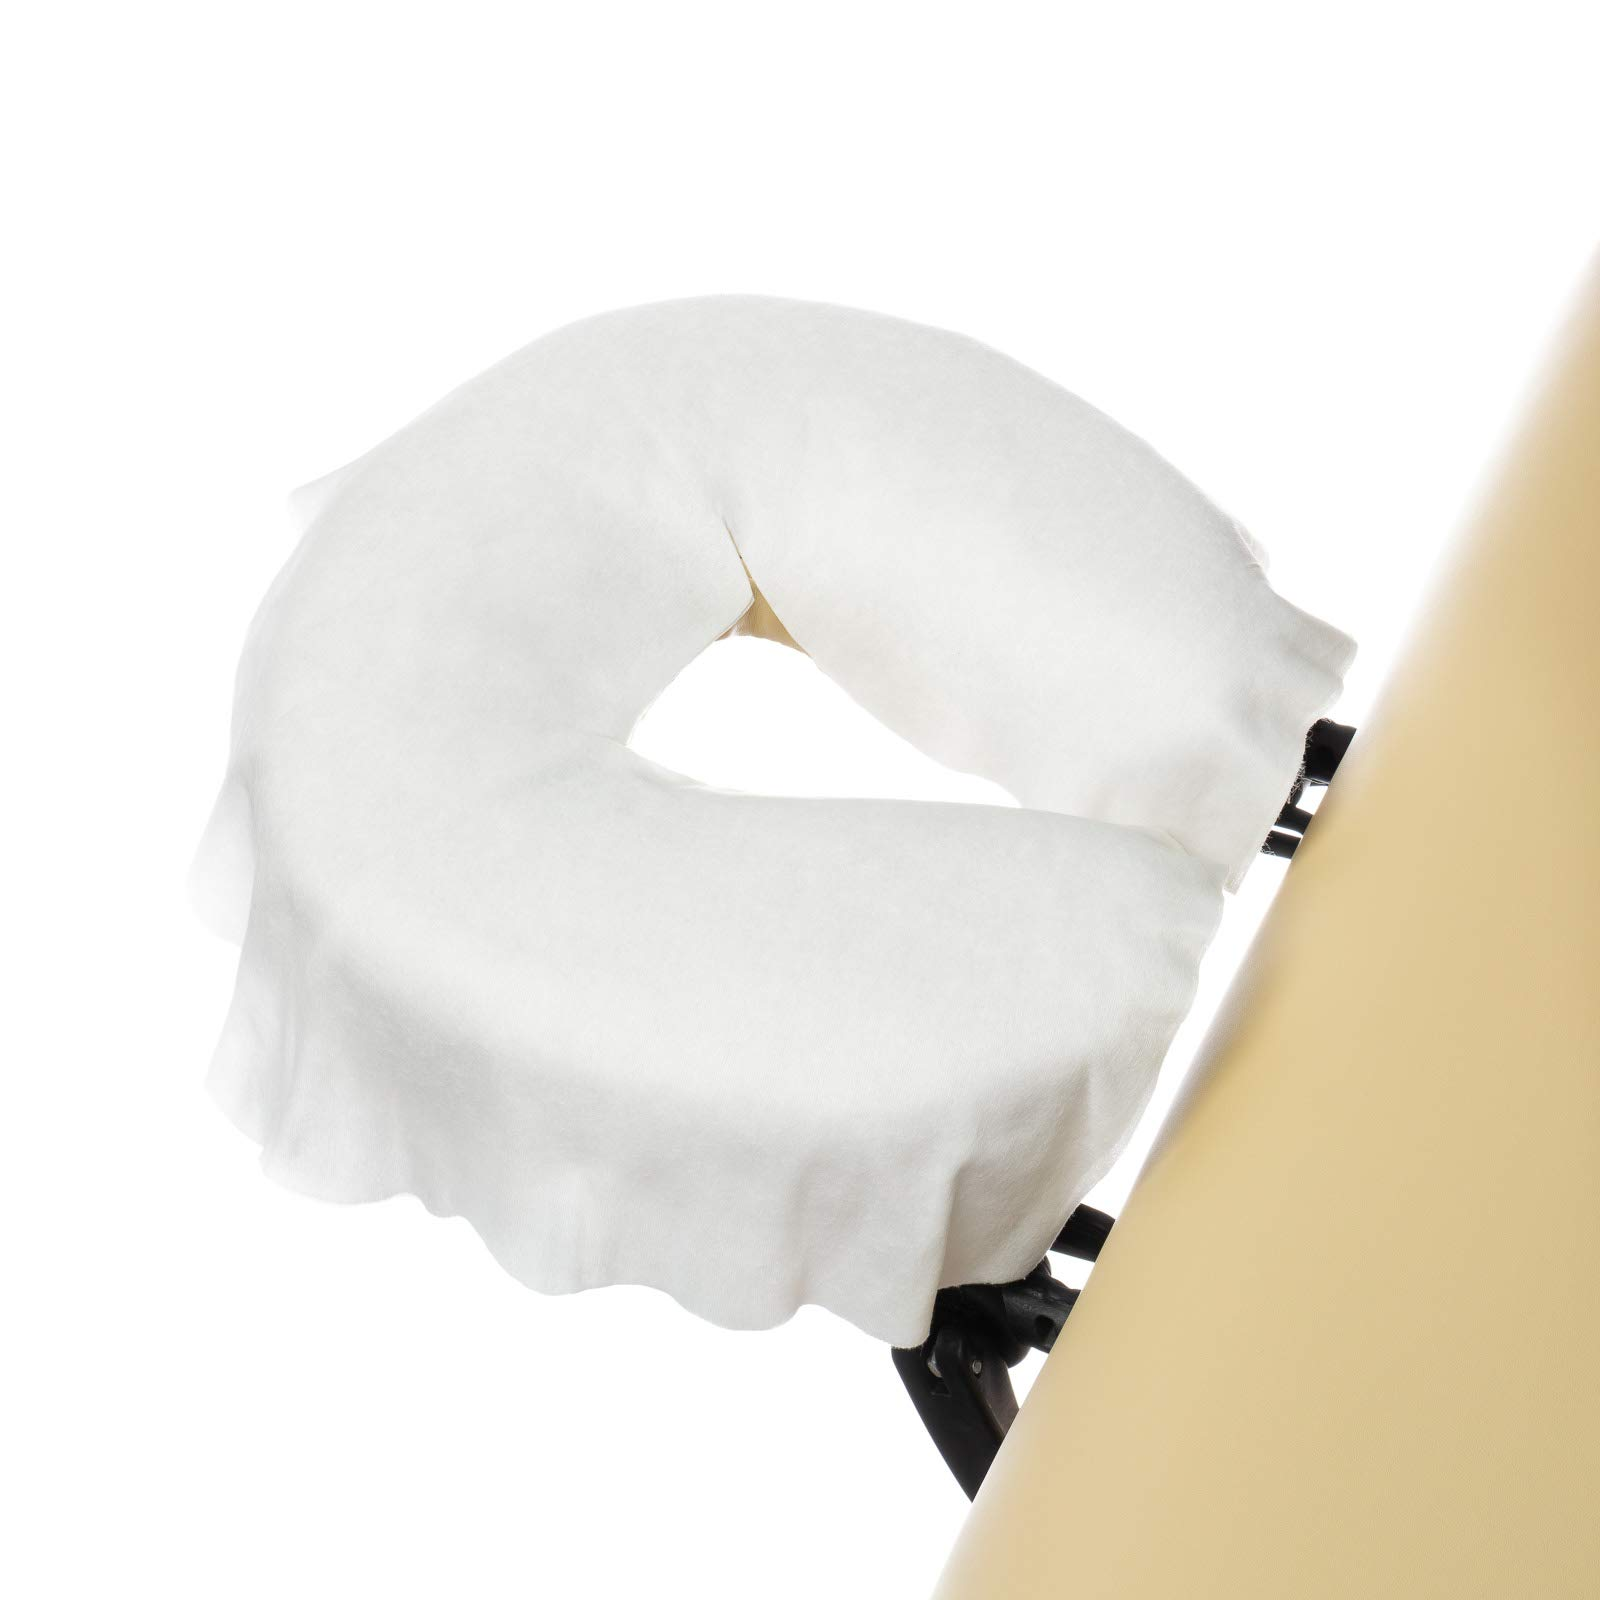 Saloniture 100 Disposable Fitted Massage Table Face Cradle Covers - Single Use Facial Bed Salon Spa Headrest Pillow Sheets